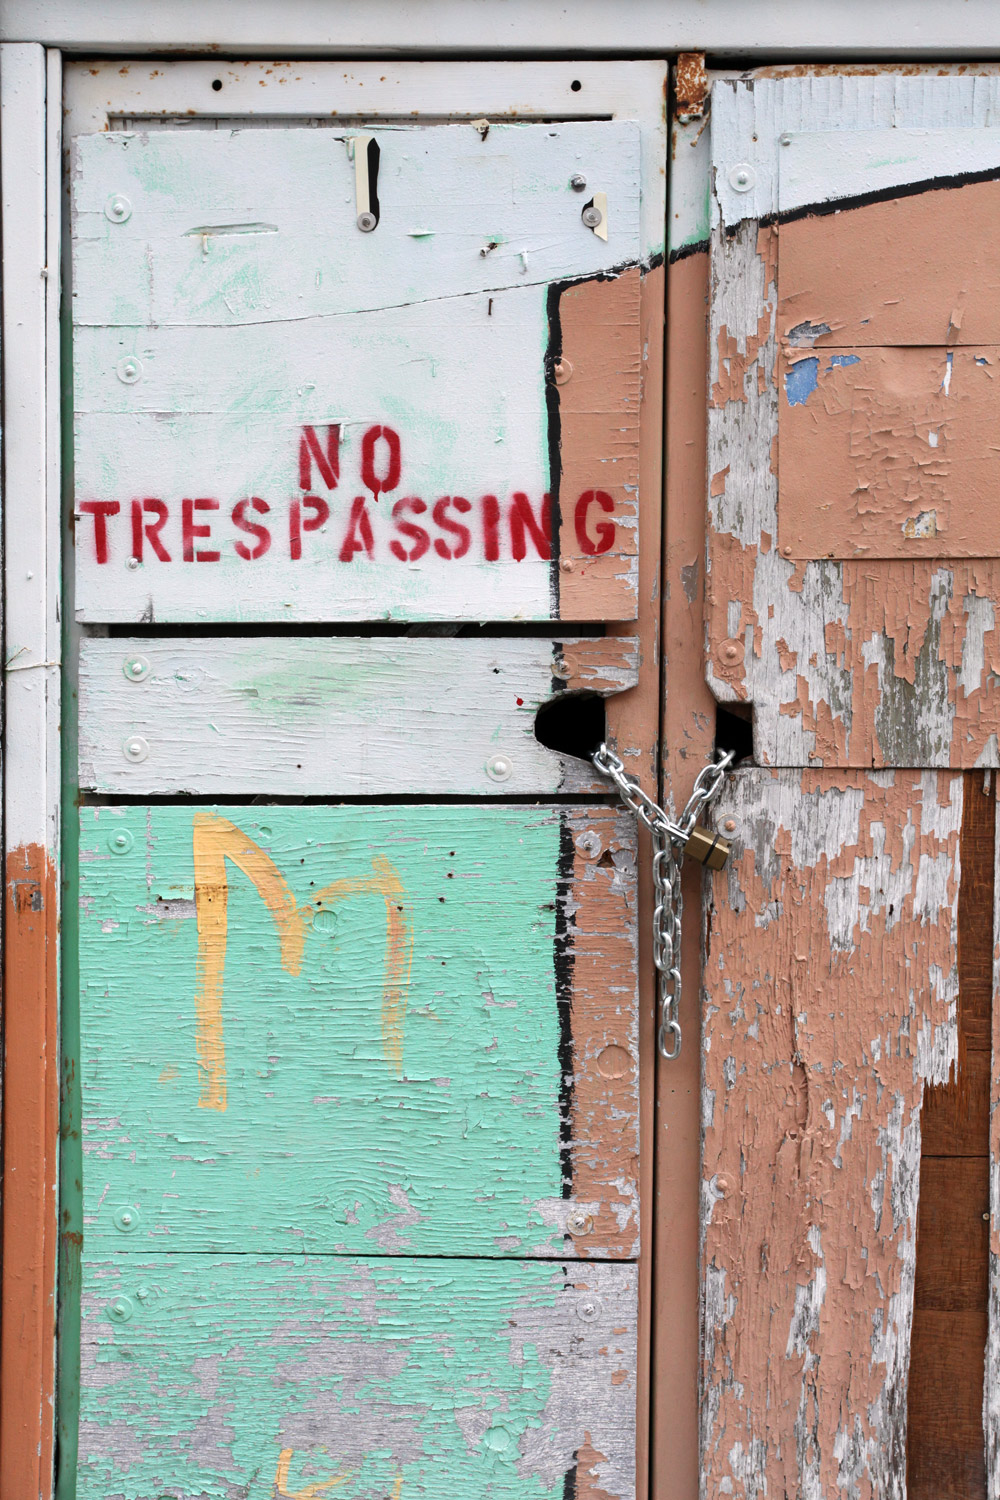 Molly Woodward Vernacular Typography Newark New Jersey No Trespassing Painted Mural